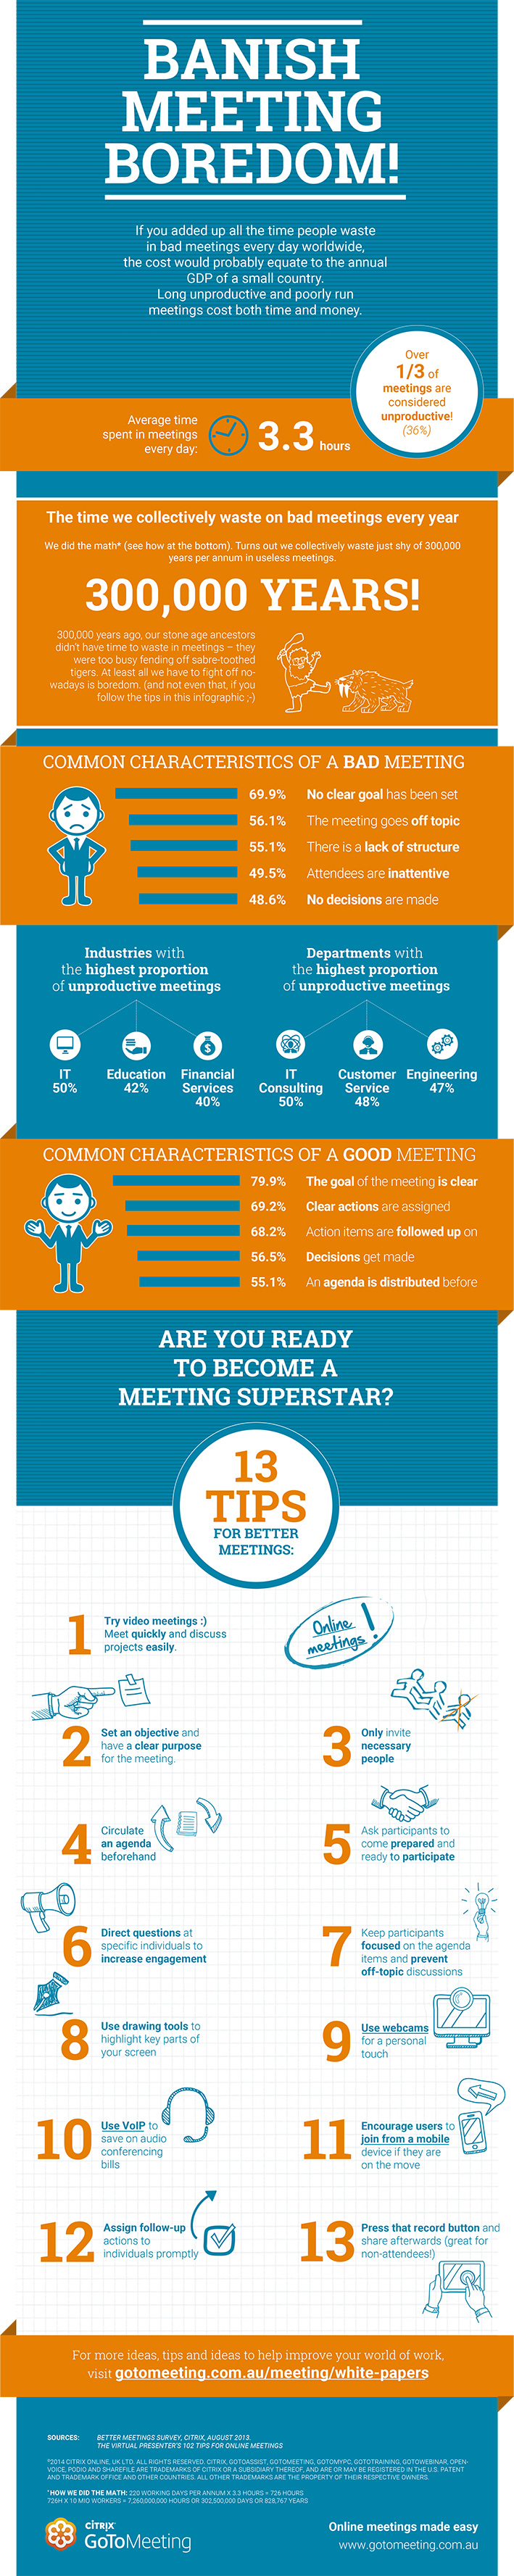 468AU_Infographic_Insiders-Guide-To-Better-Meetings